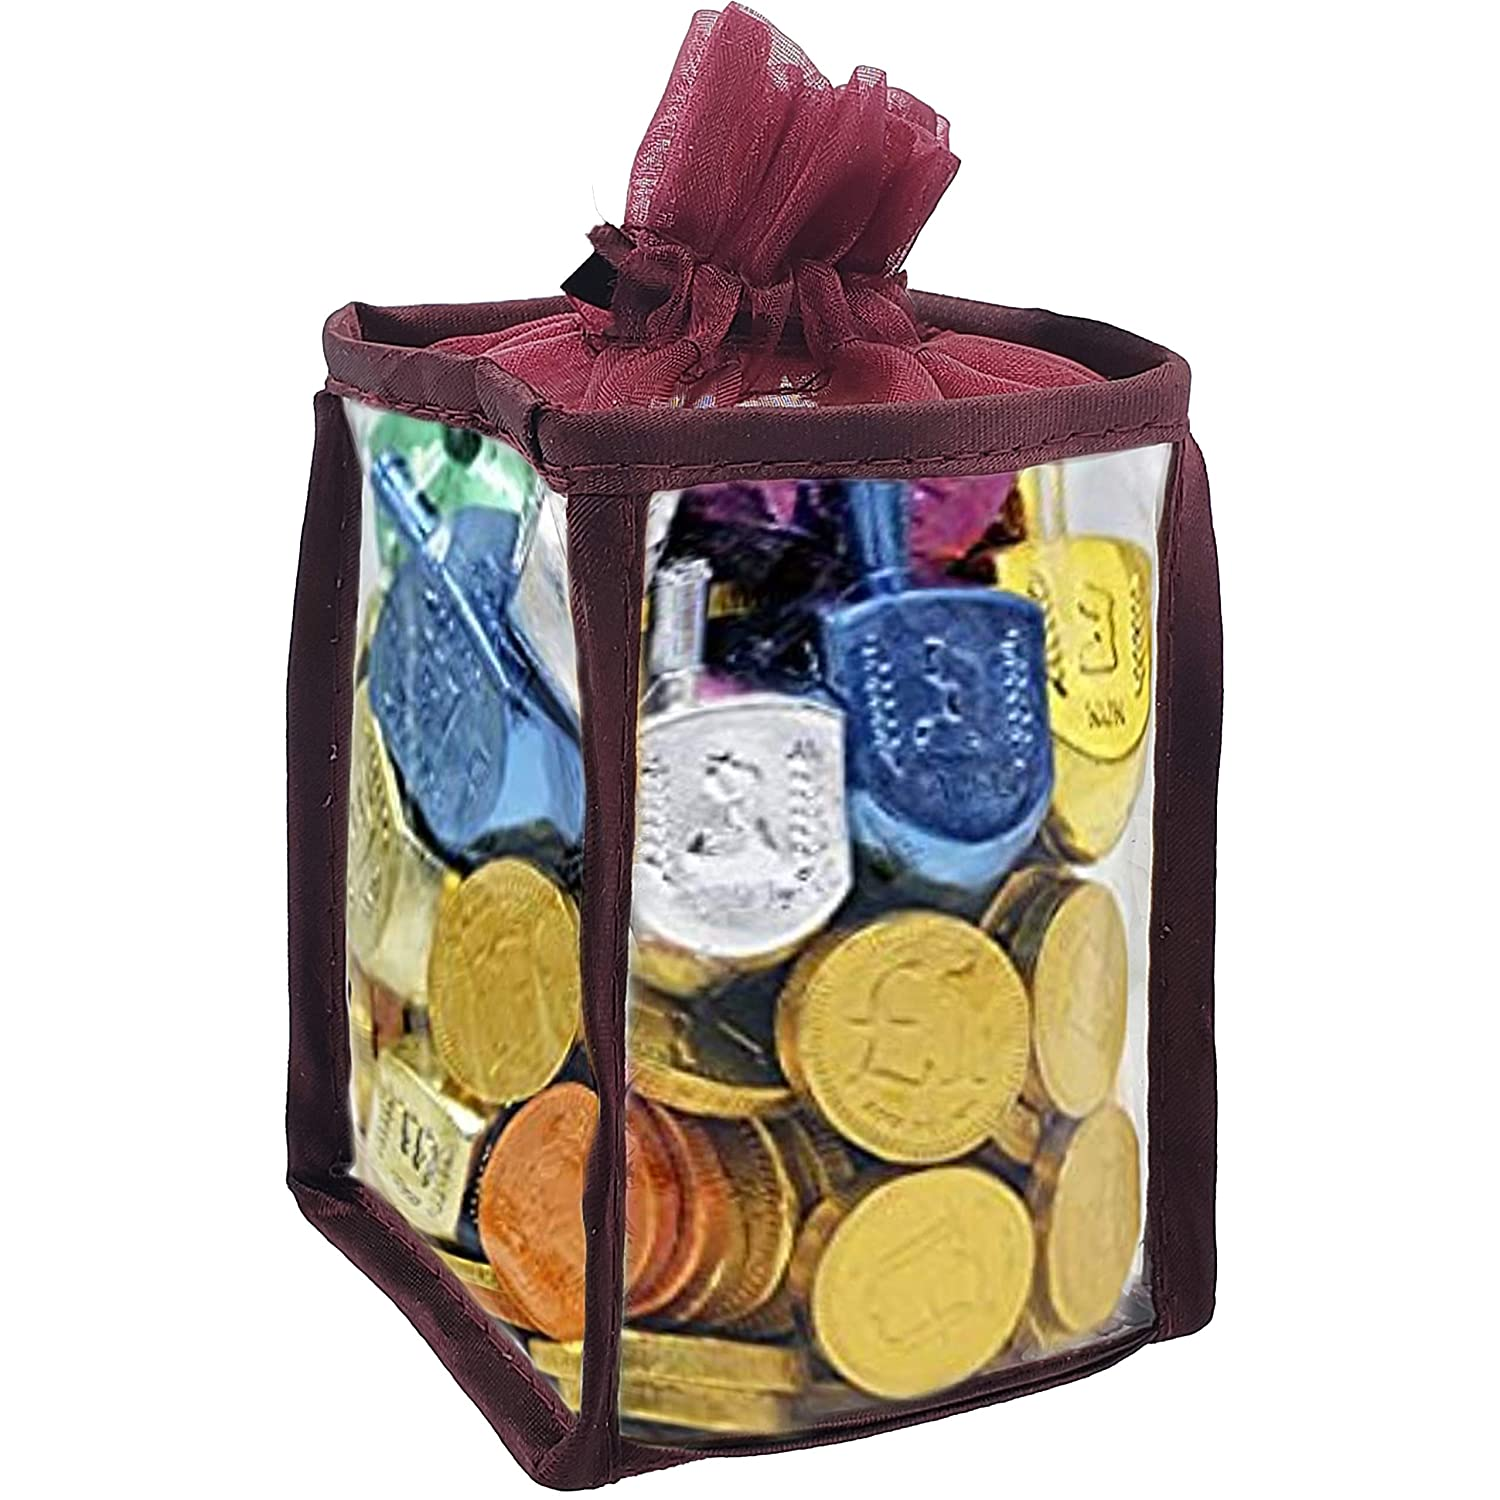 Hanukkah Gift Set Sale special price Of Dreidels and Max 70% OFF Chanu Chocolate for Coins Gelt